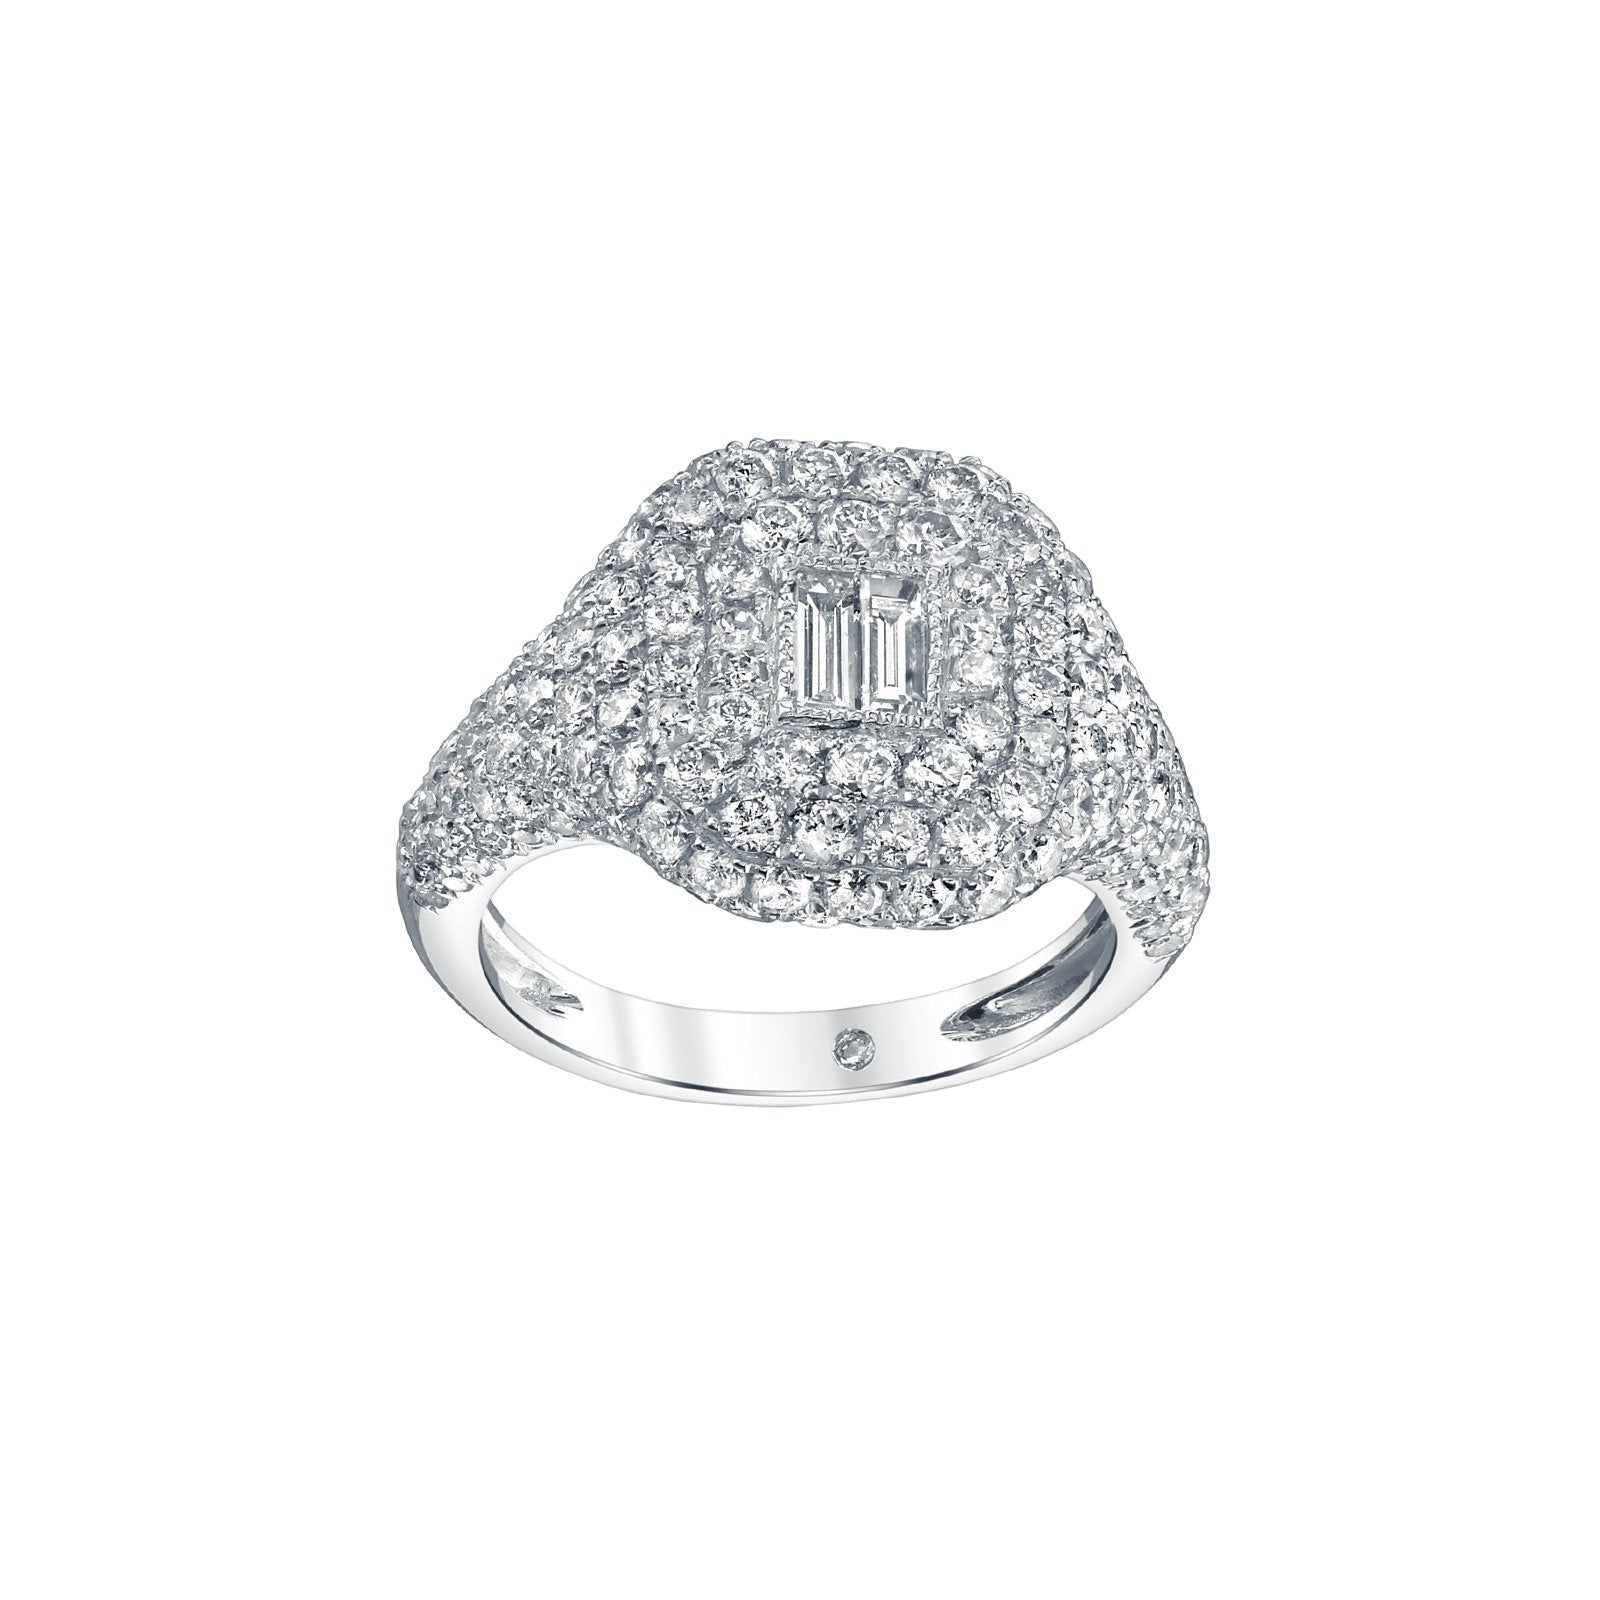 Shay Pave Baguette Diamond Pinky Ring - White Gold - Rings - Broken English Jewelry